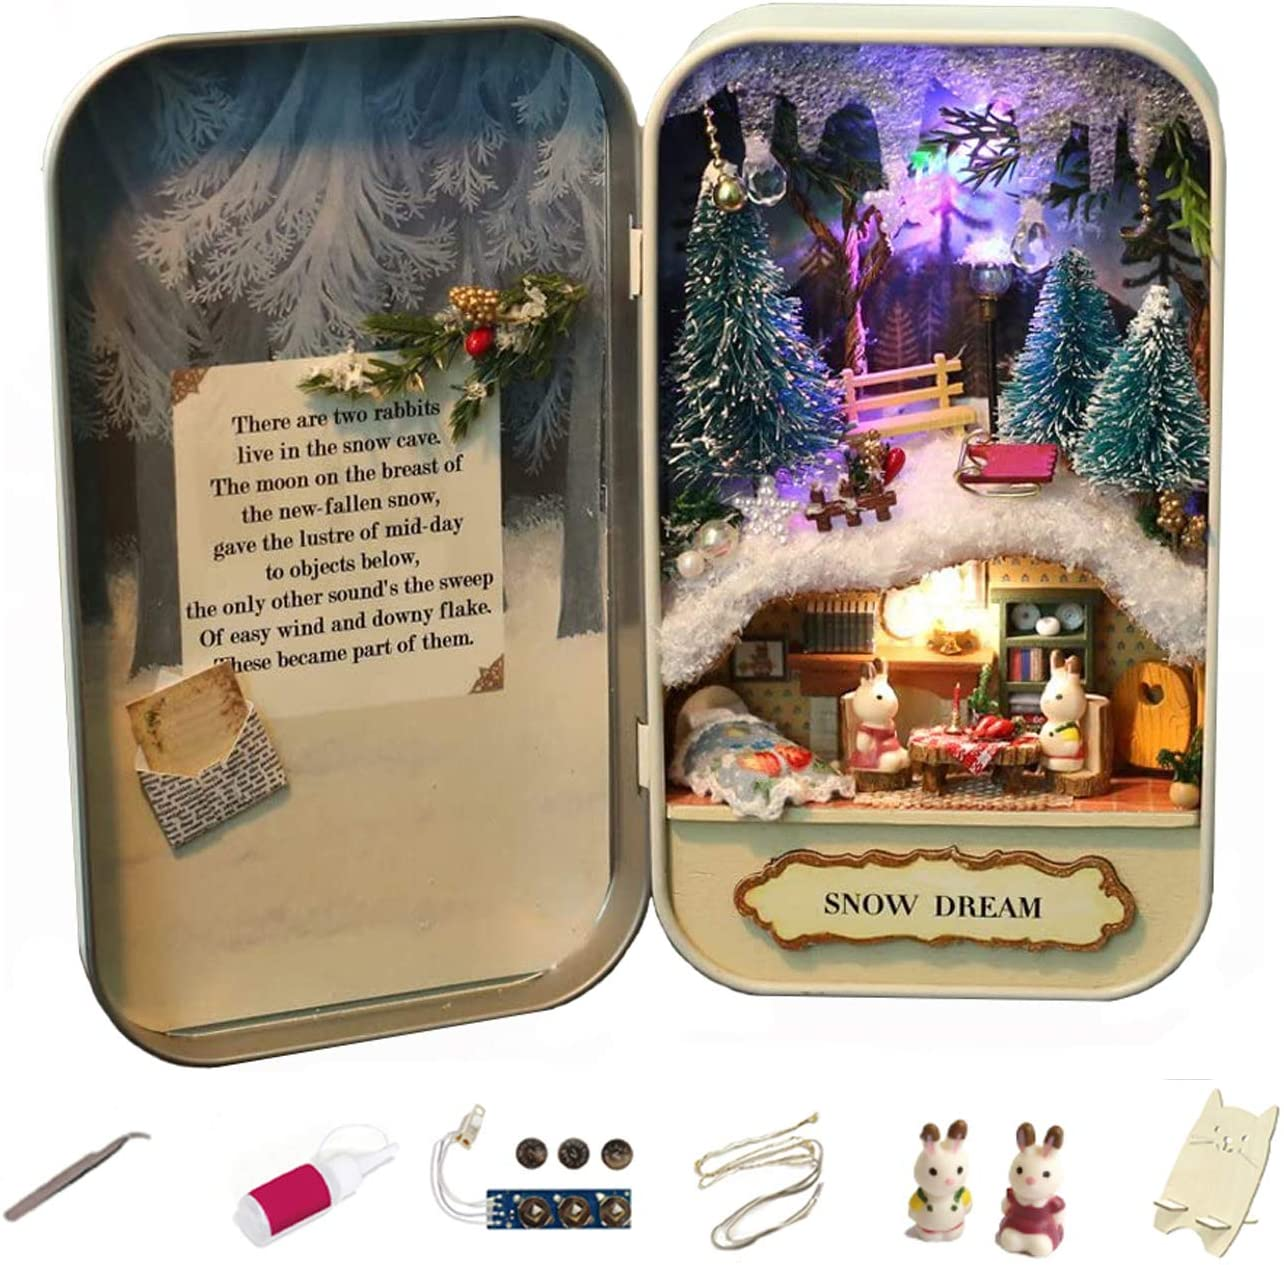 MAGQOO 3D Wooden Dollhouse Miniature DIY Doll House Kit with Furniture,1:24 DIY Box Theater Kit (Snow Dream)